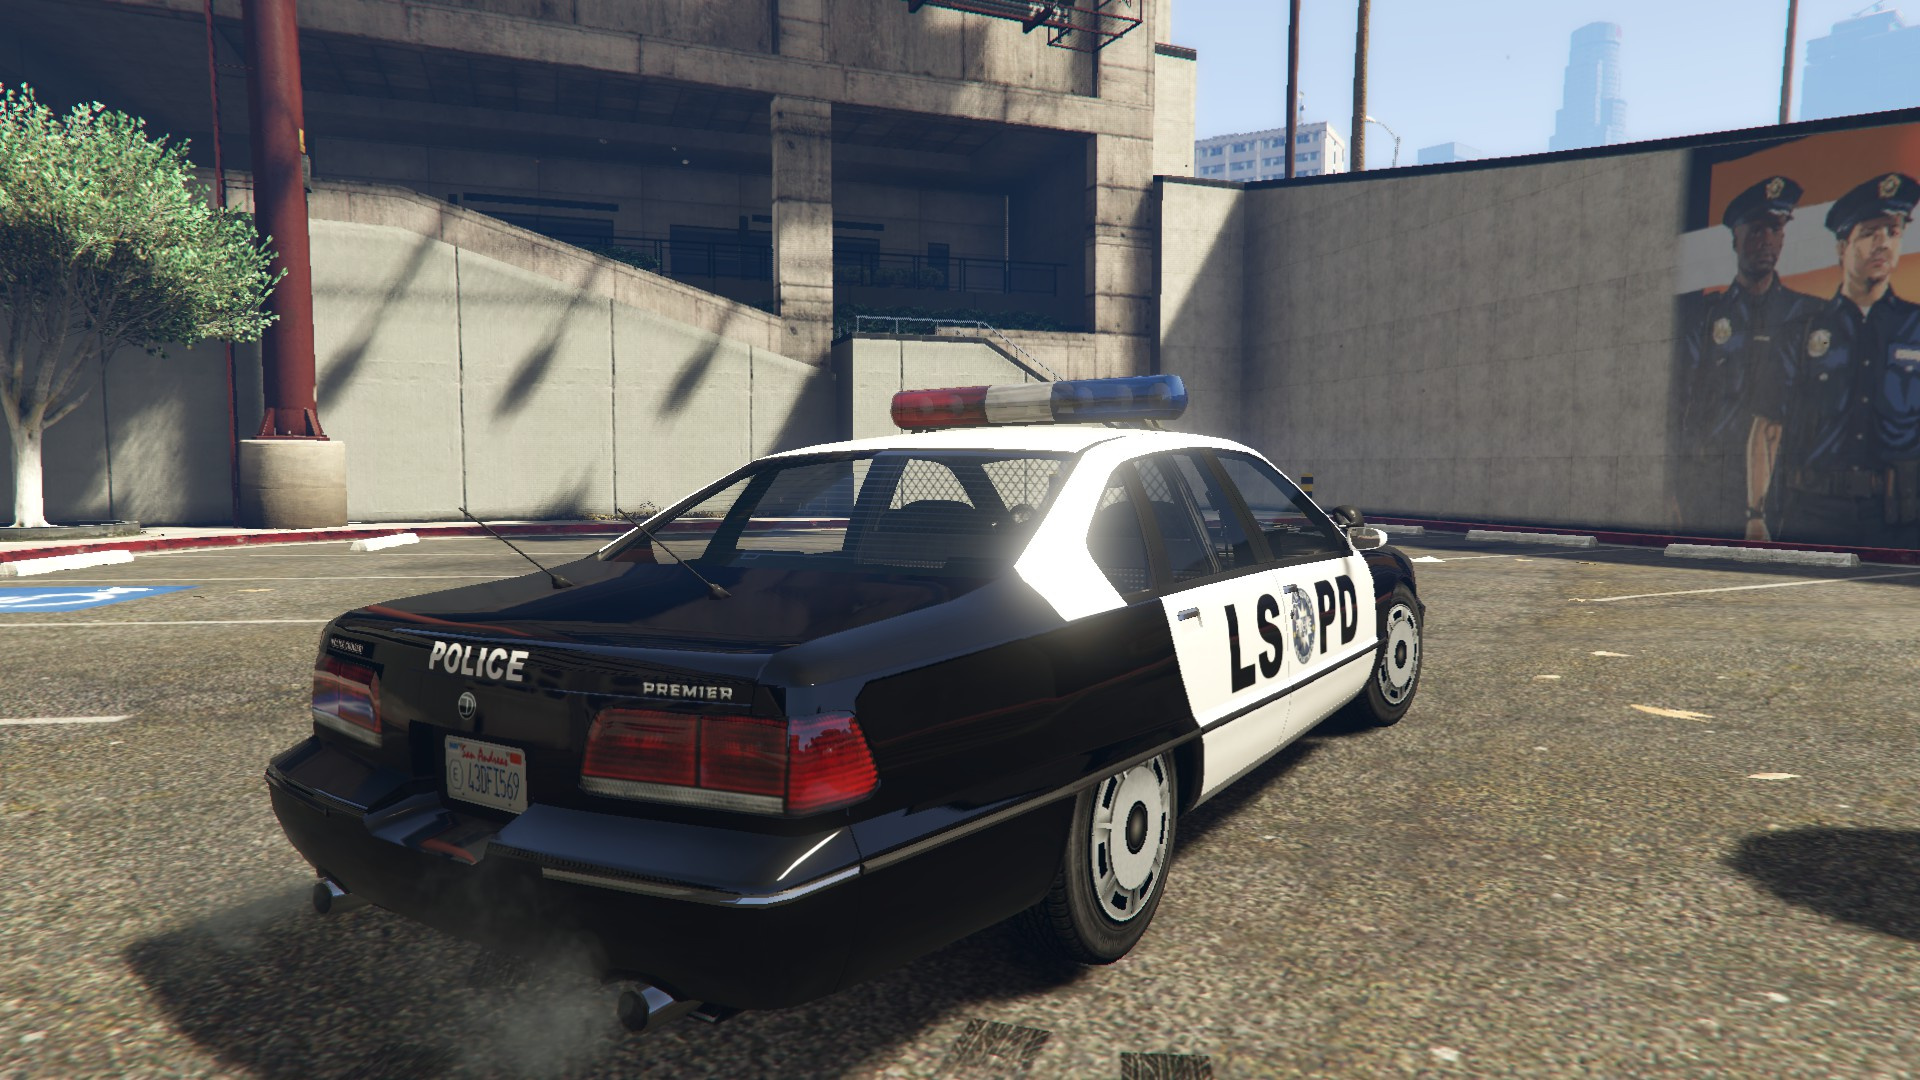 GTA San Andreas Police Liveries Pack - GTA5-Mods com